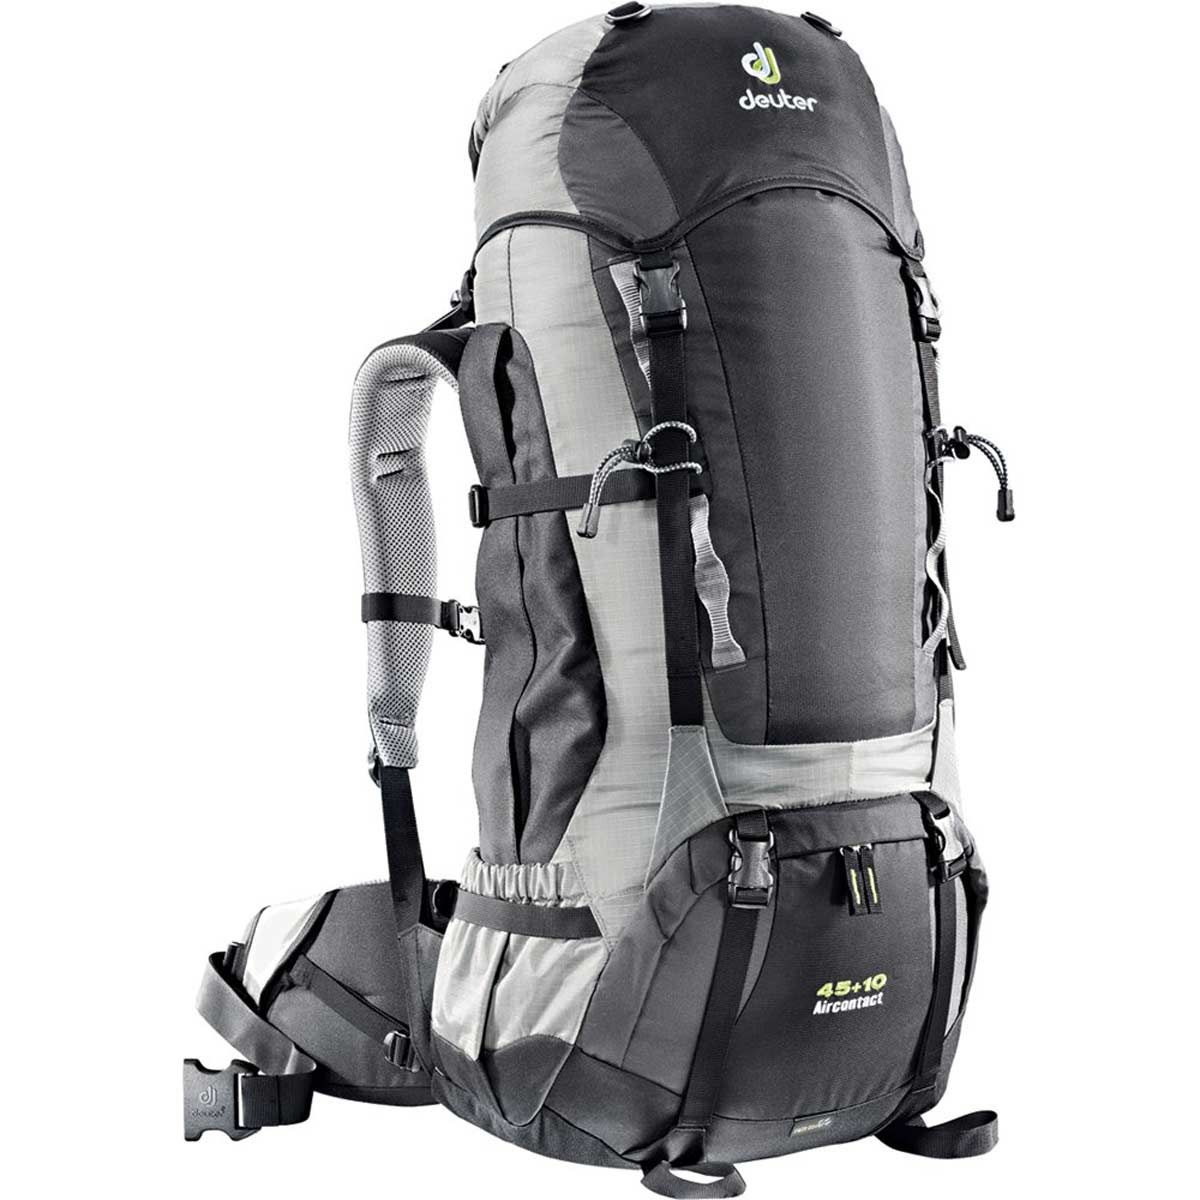 45+ backpack from Deuter